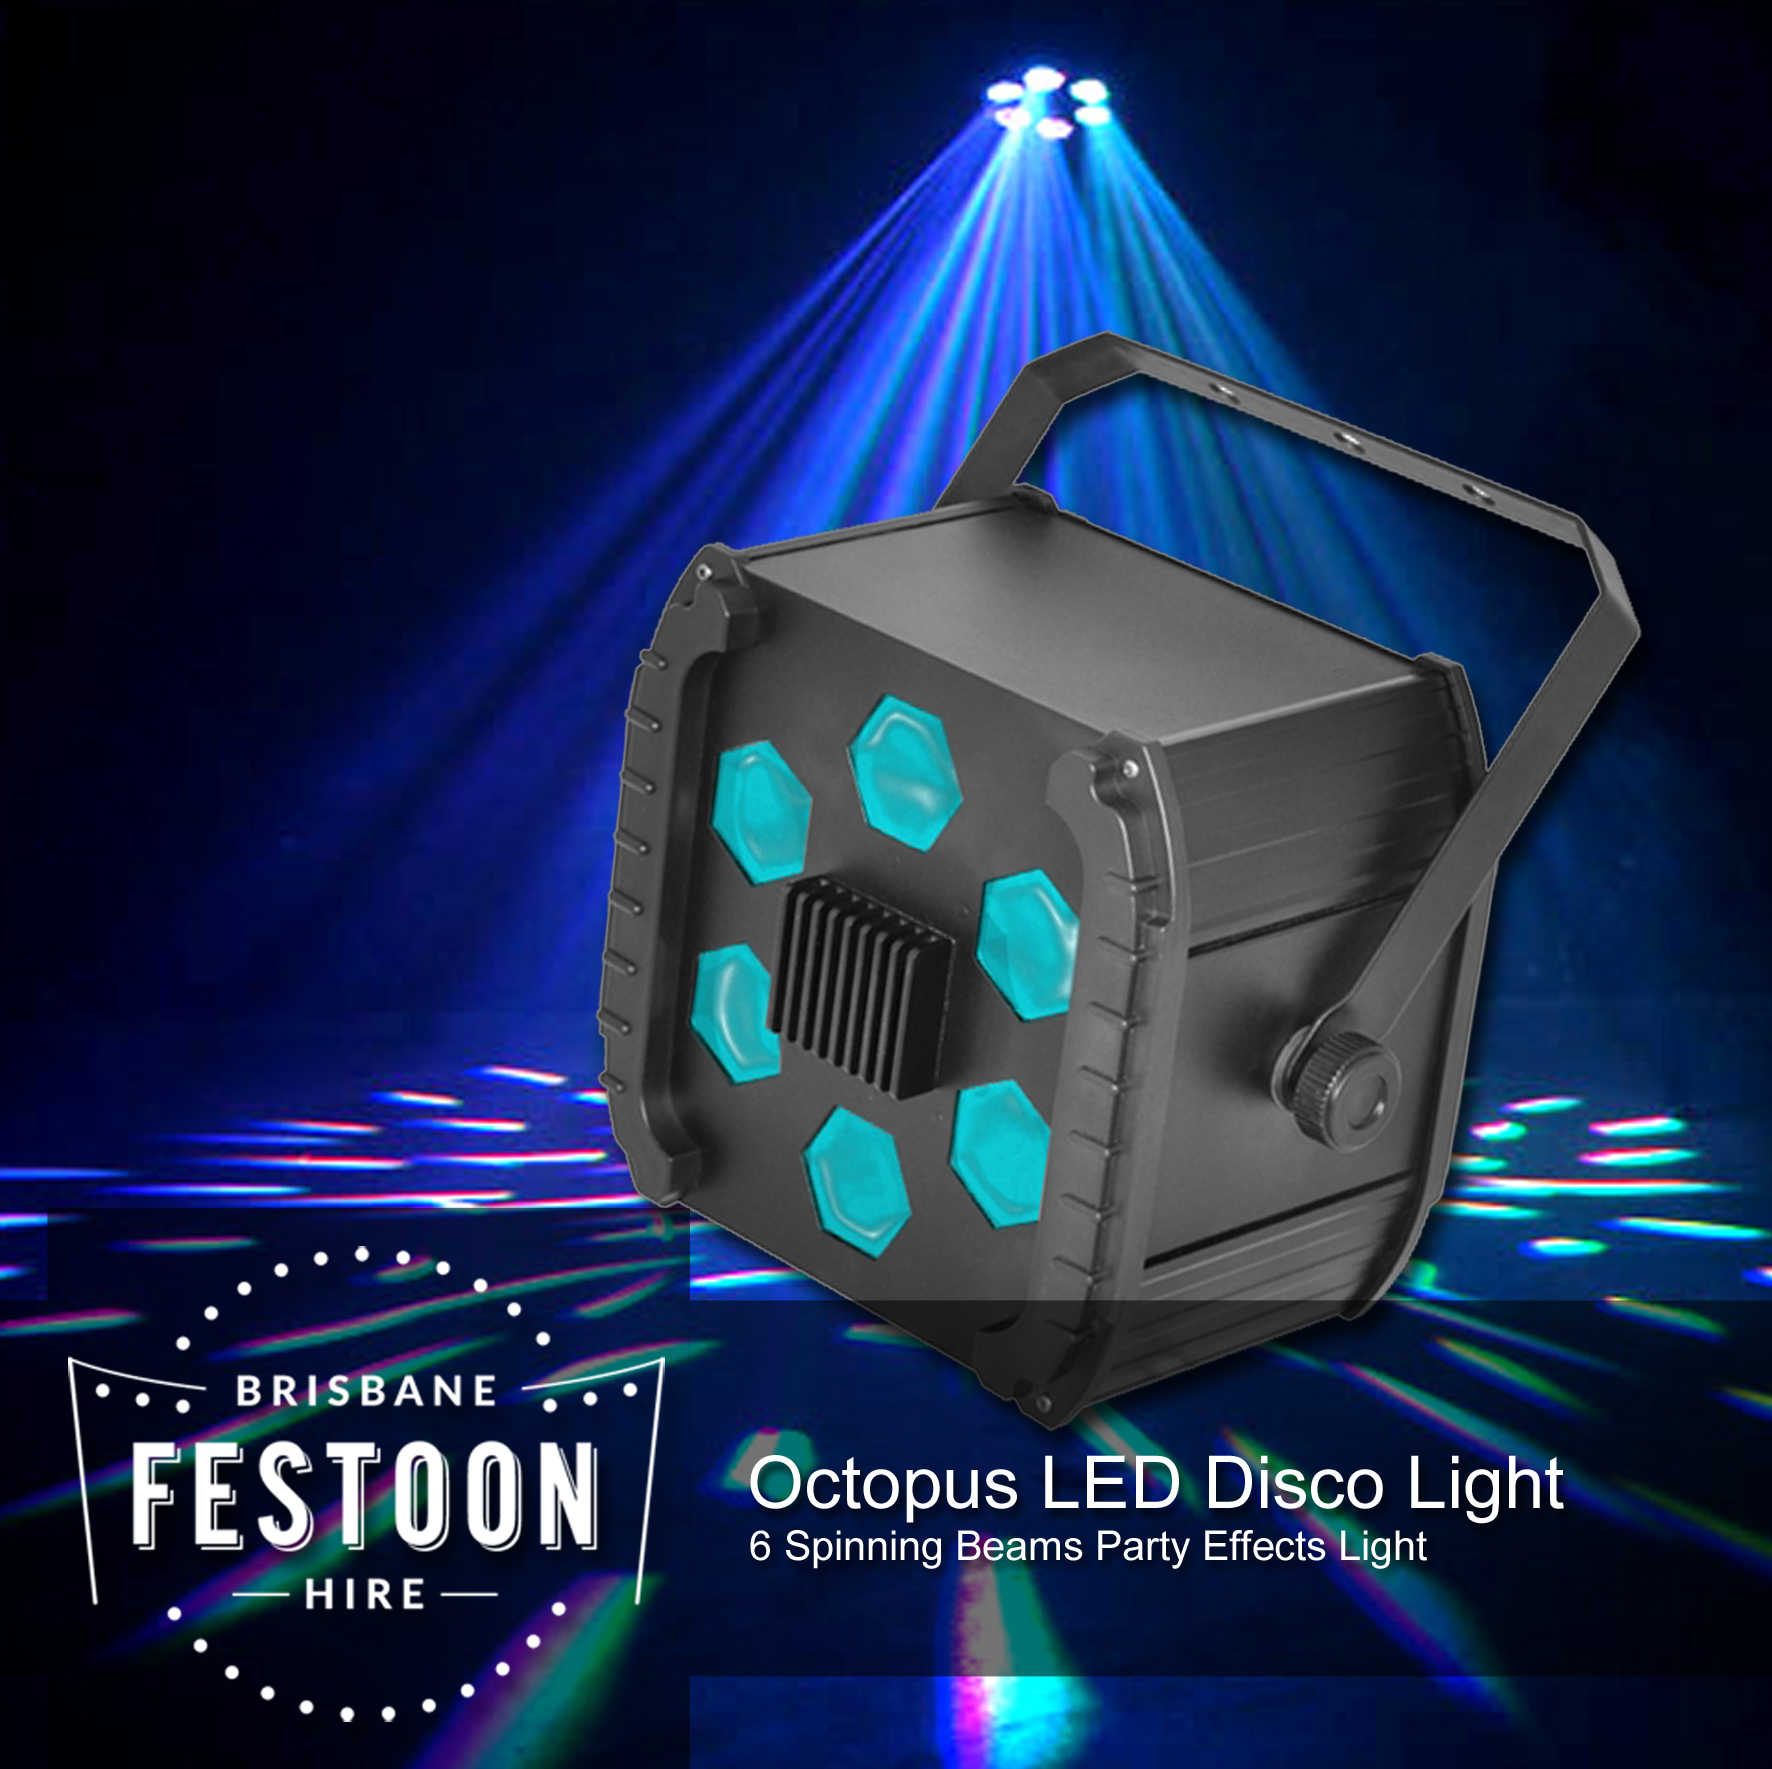 Brisbane LED Disco Light Hire 1.jpg